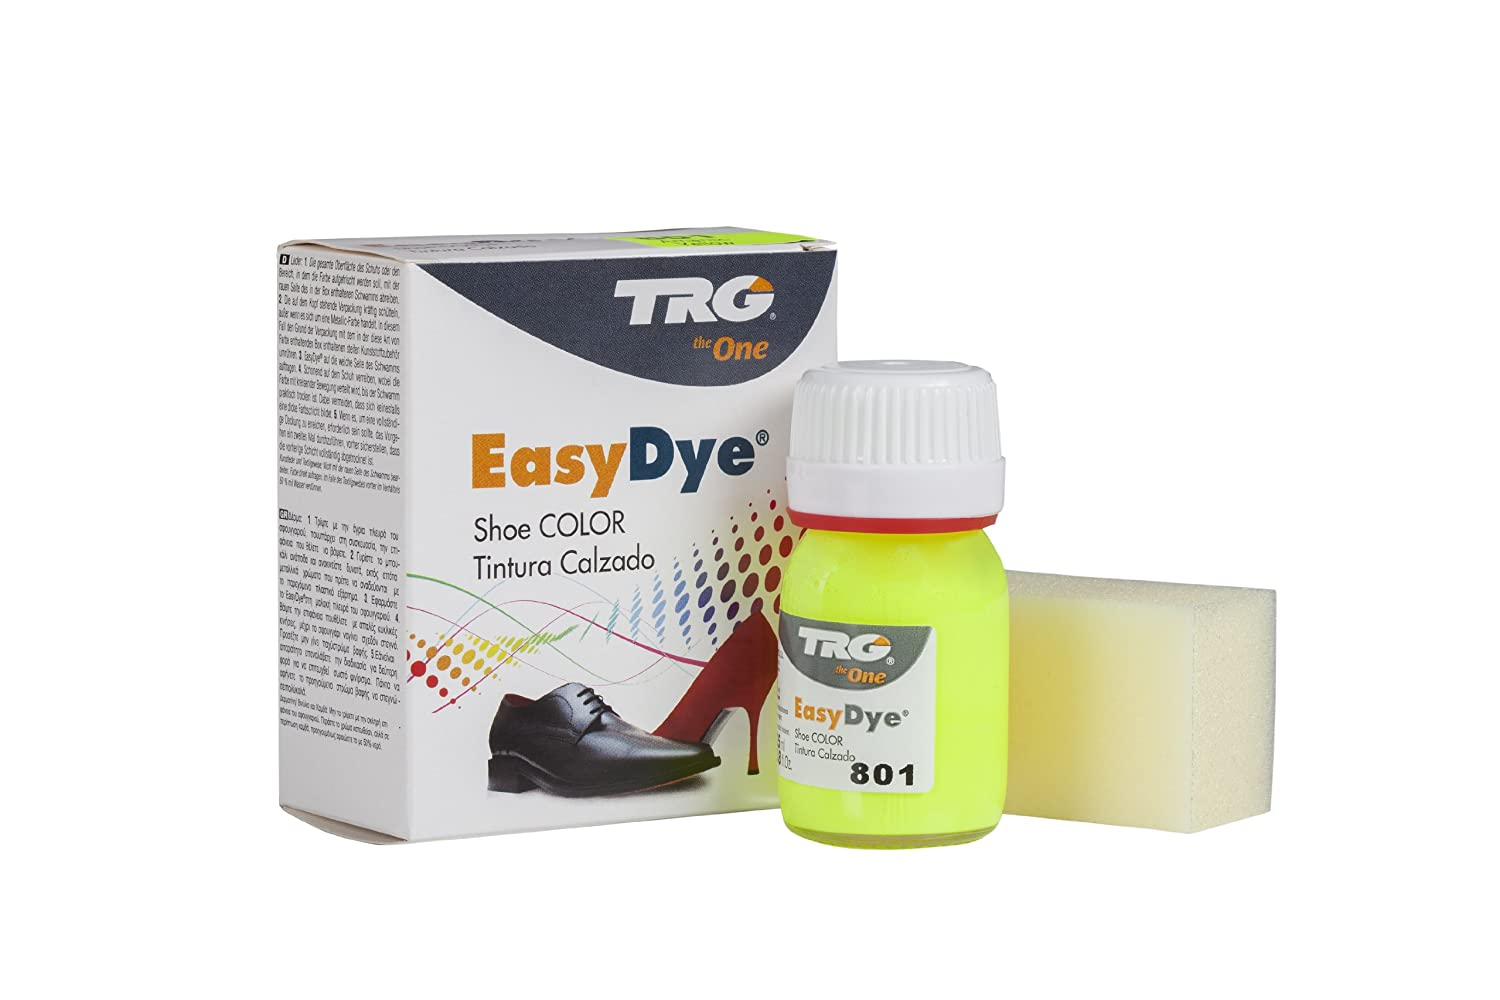 TRG The One Unisex-Adult the One Self Shine Leather Dye Kit Colours & Dyes TRG Thoe One 801